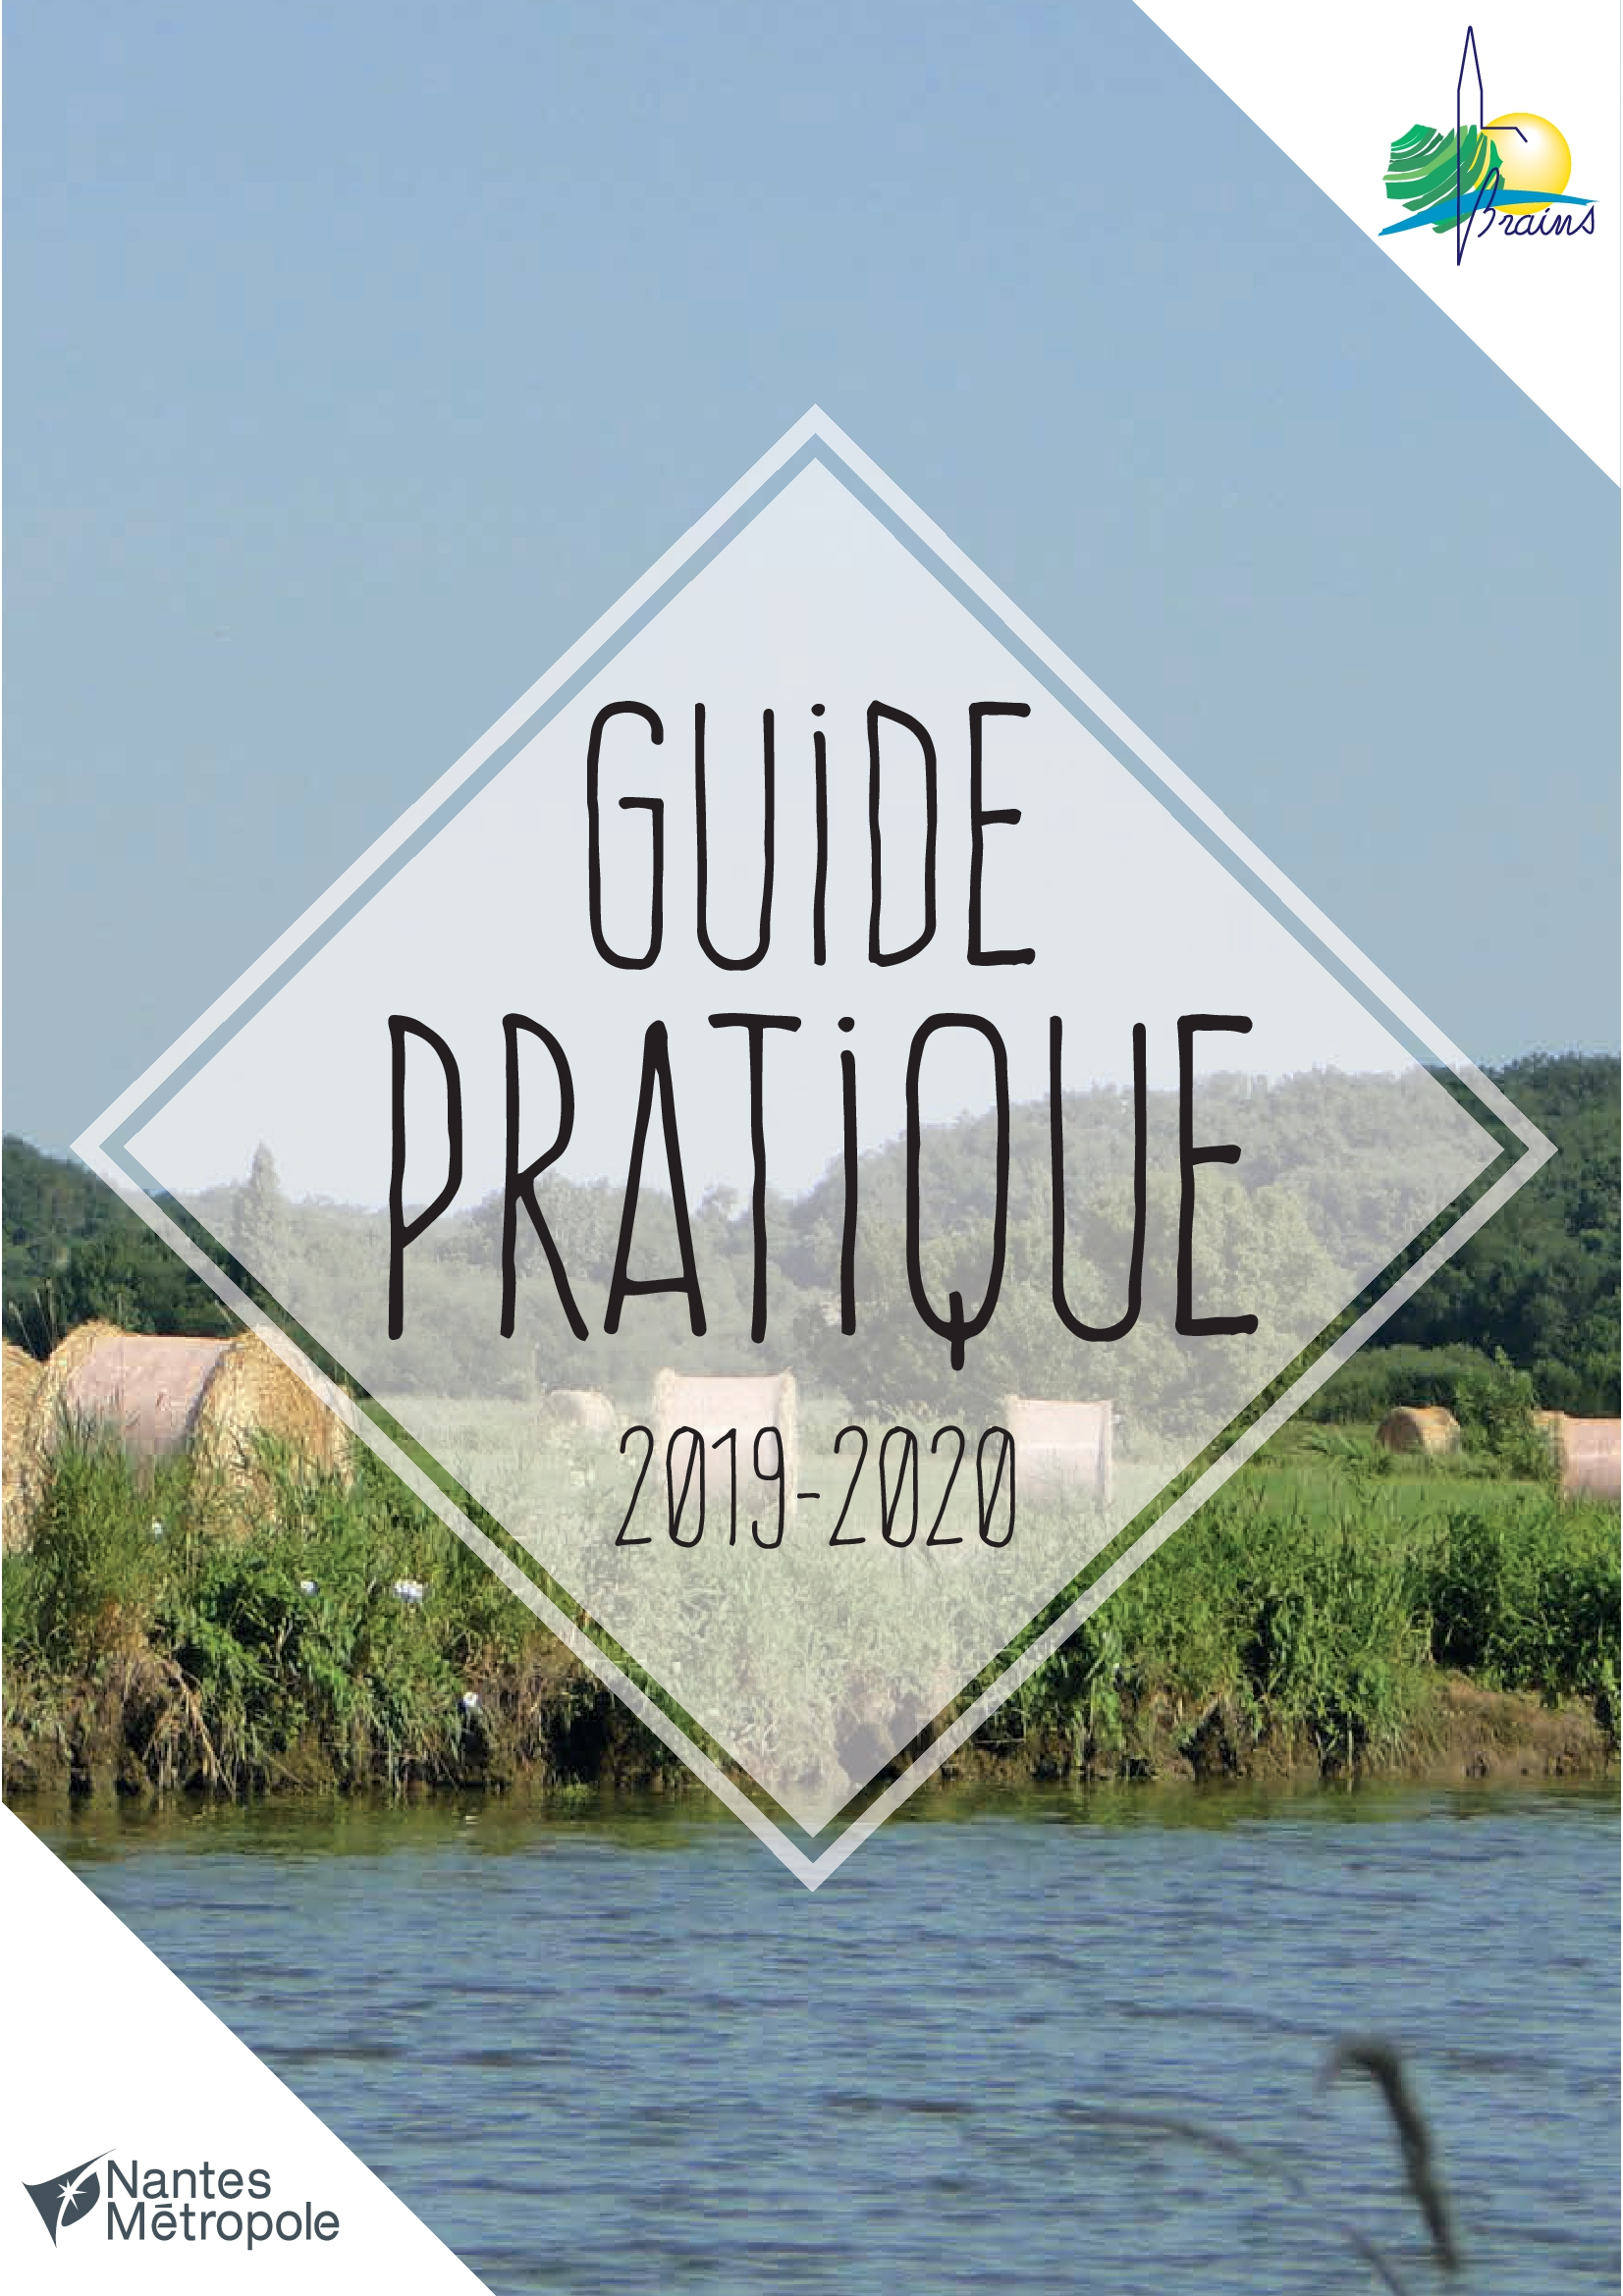 Guide pratique 2019-2020